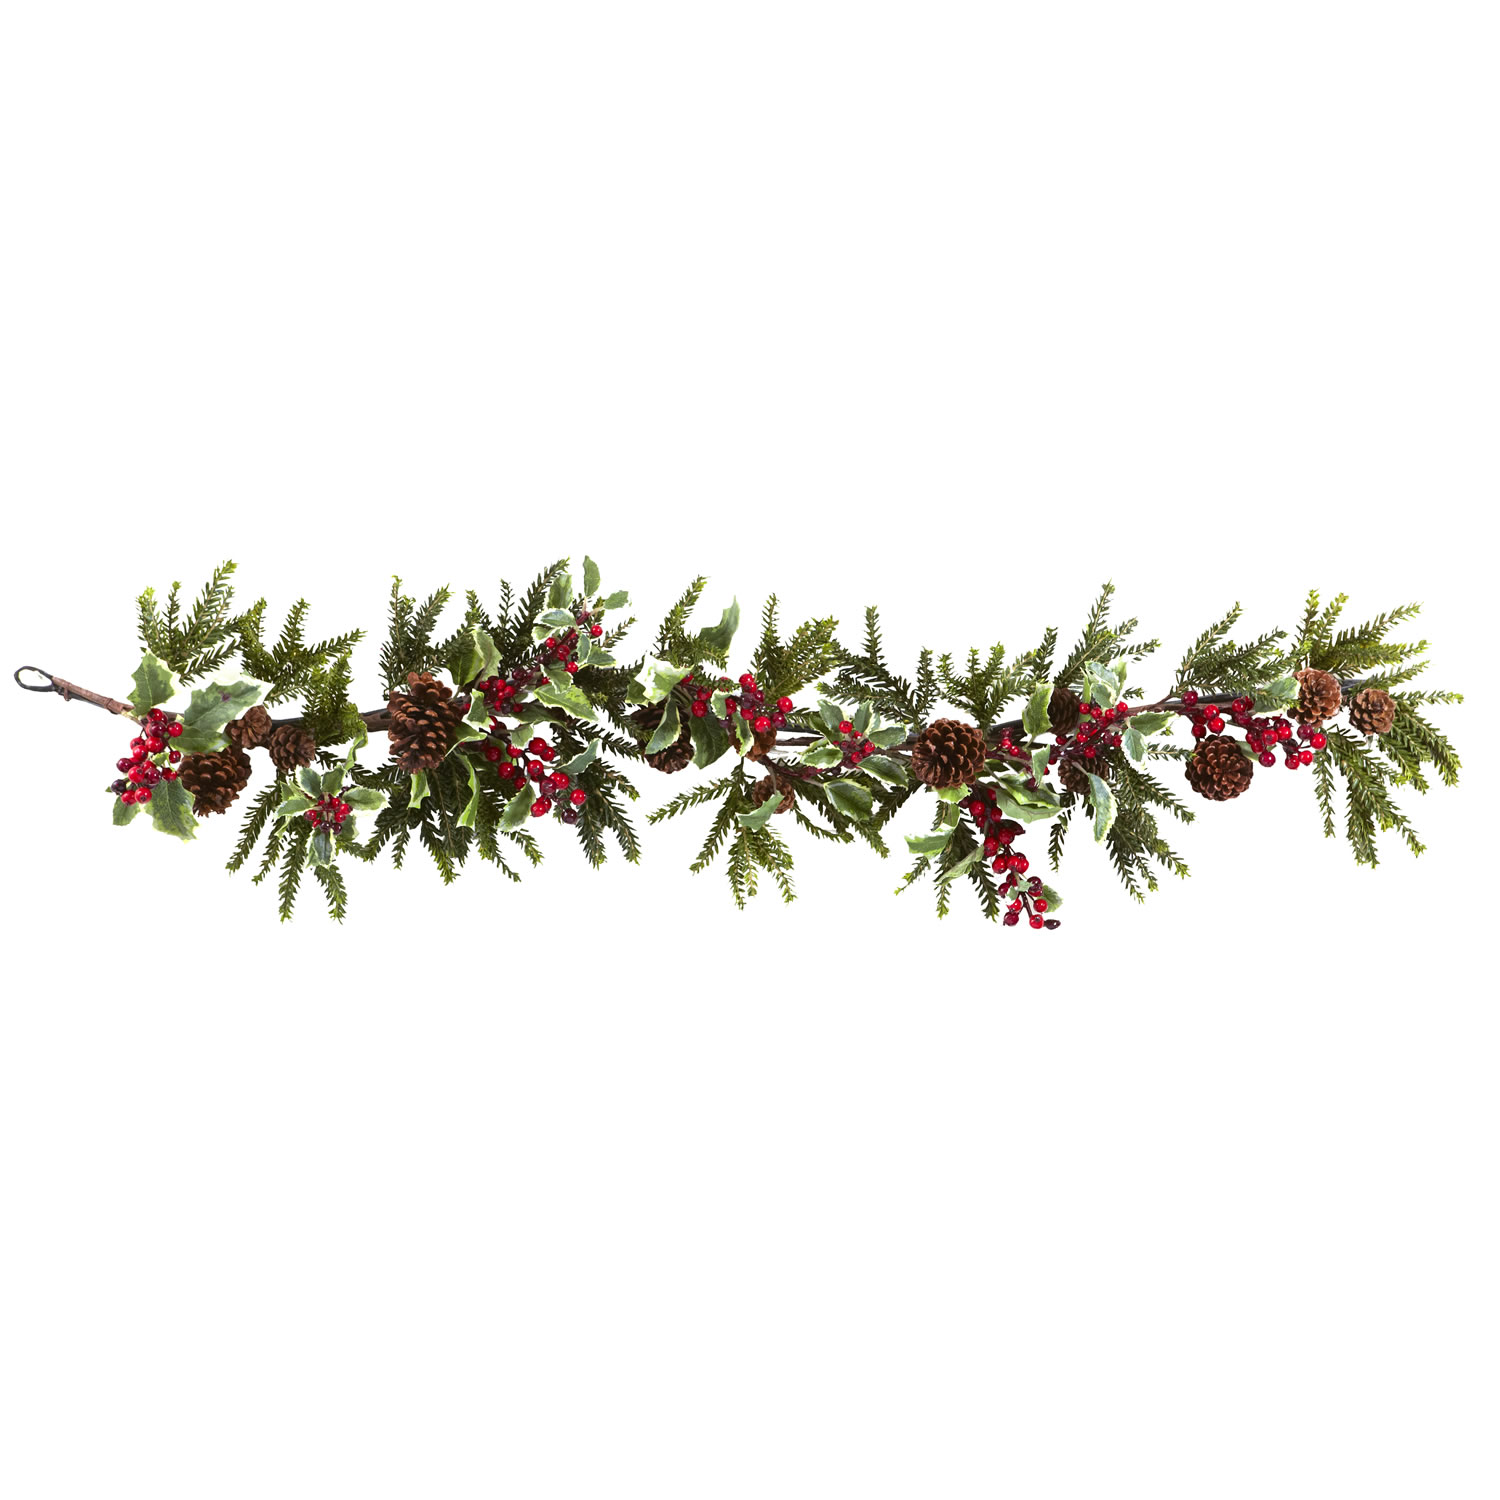 Pine clipart treee Zone Holly clipart free Cliparts